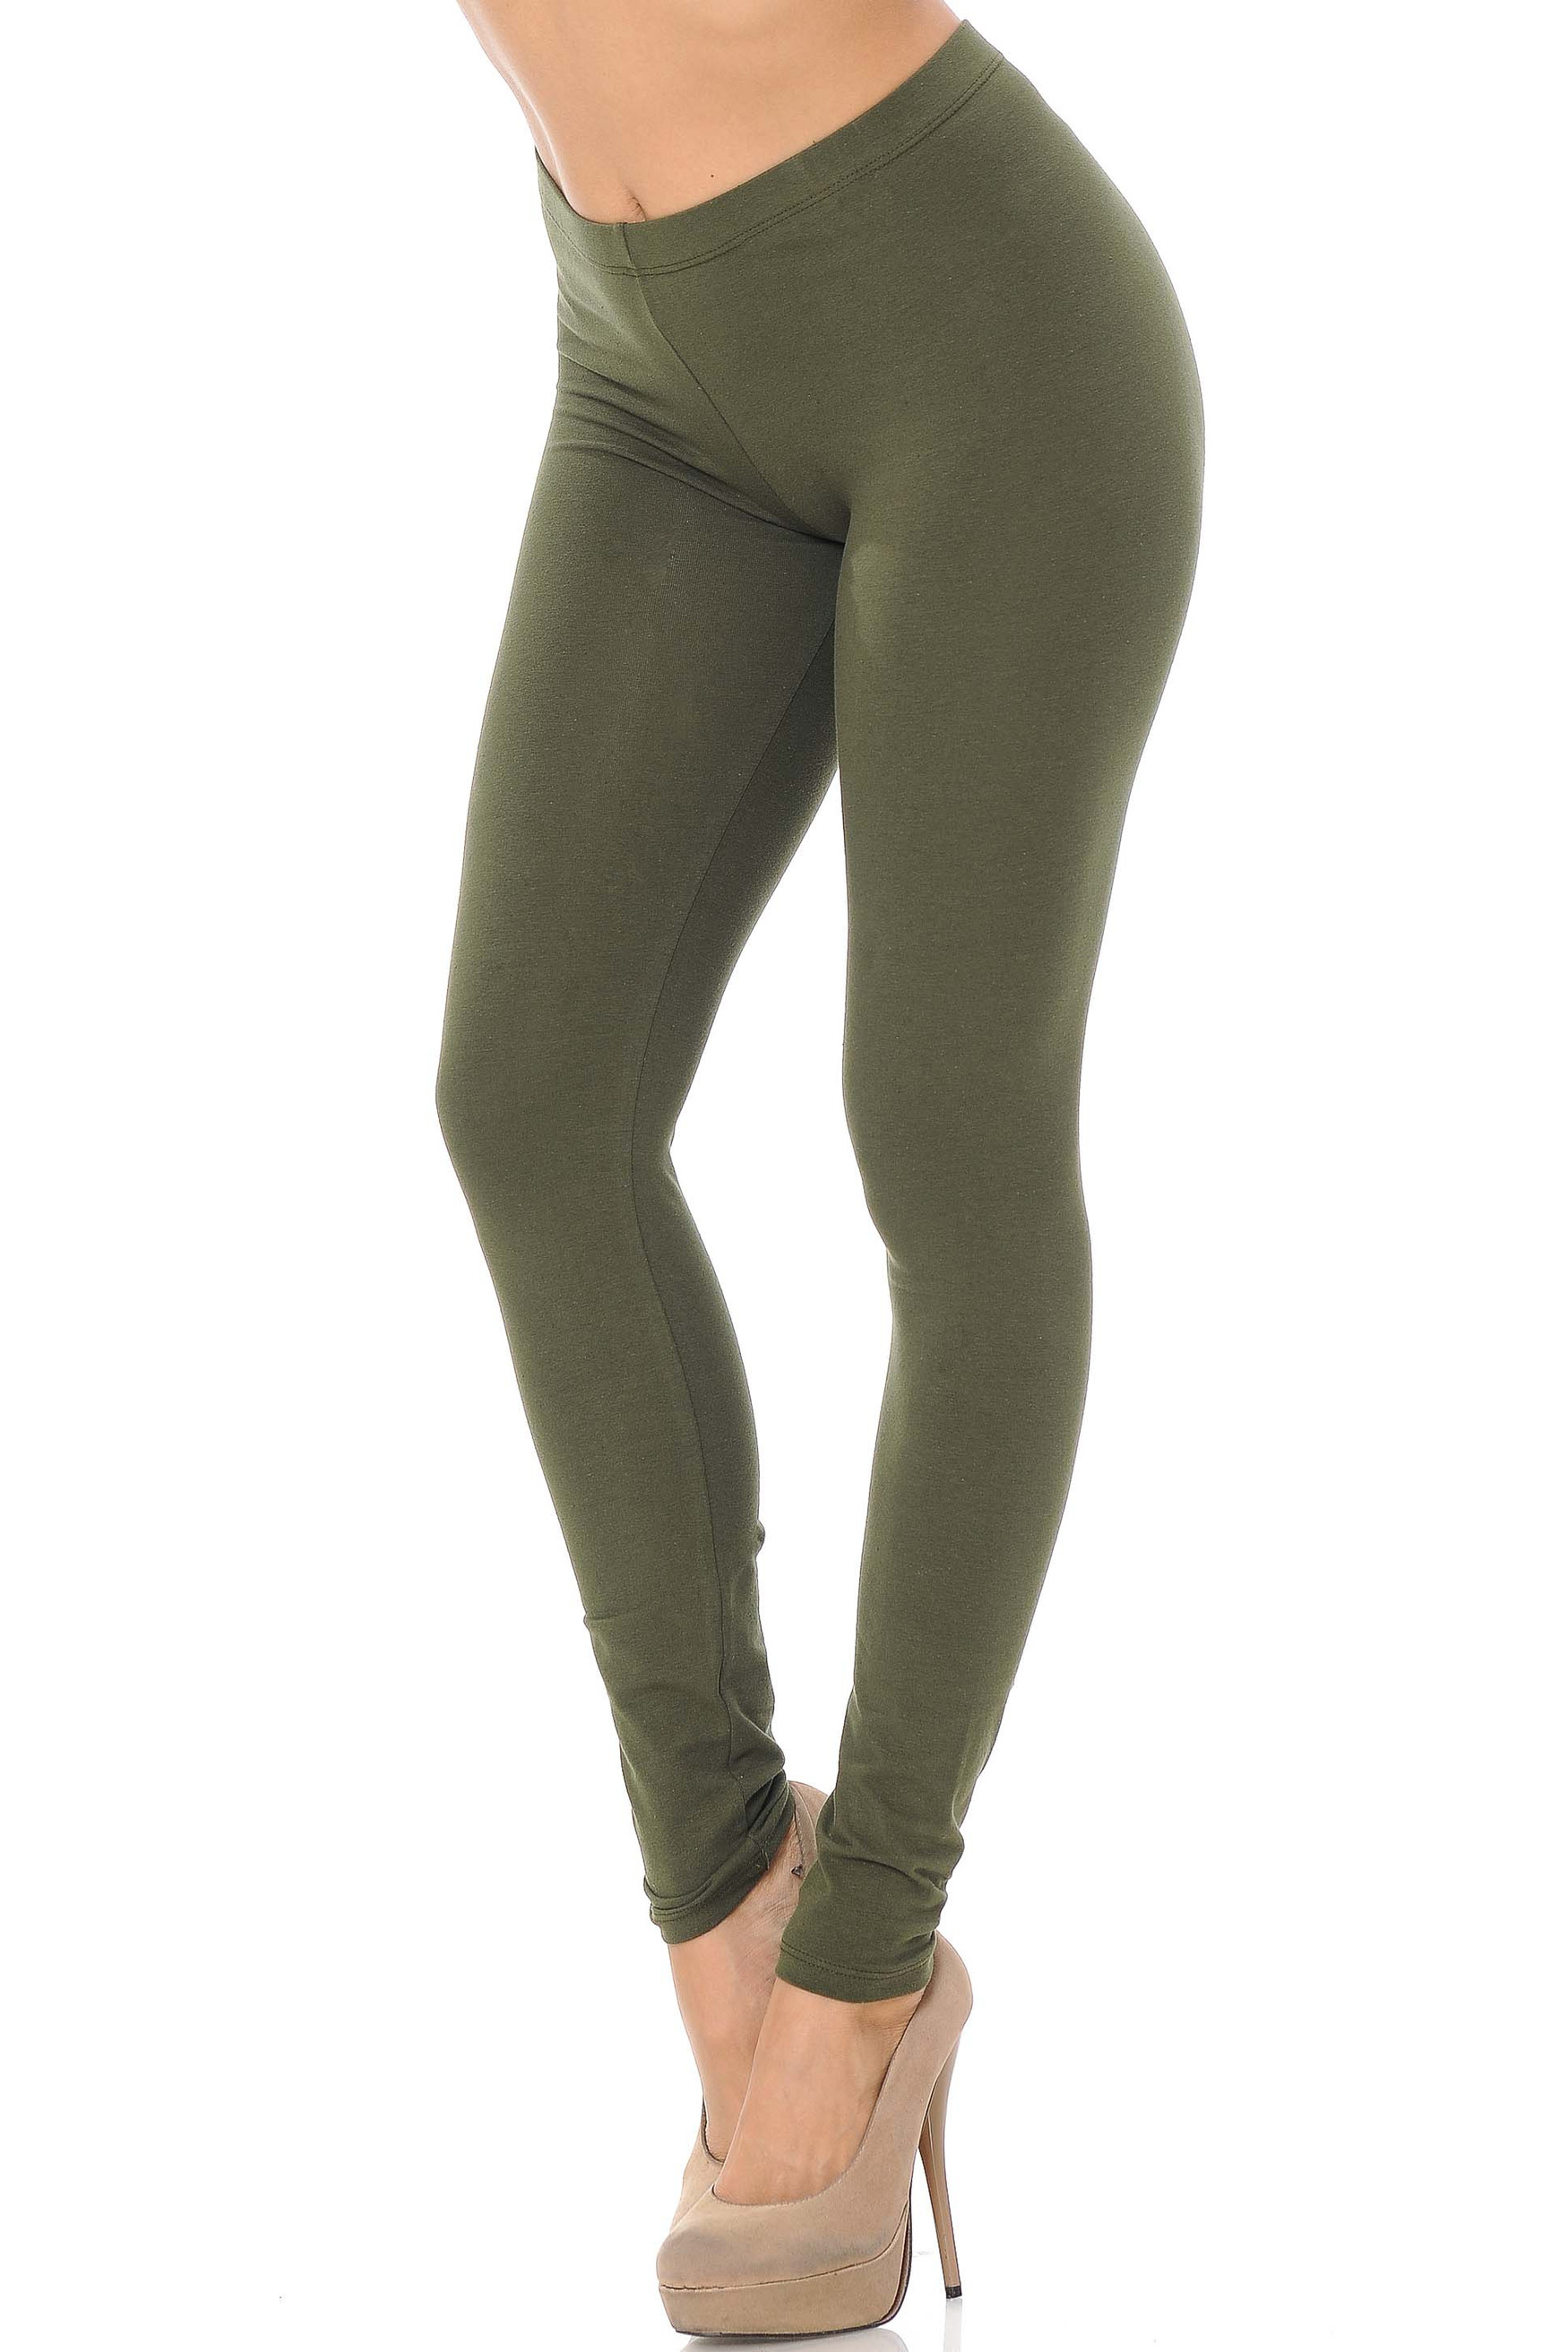 45 degree angle image of female model wearing an olive pair of made in the USA cotton leggings showing  a just below the belly button rise and full length going to the ankles.